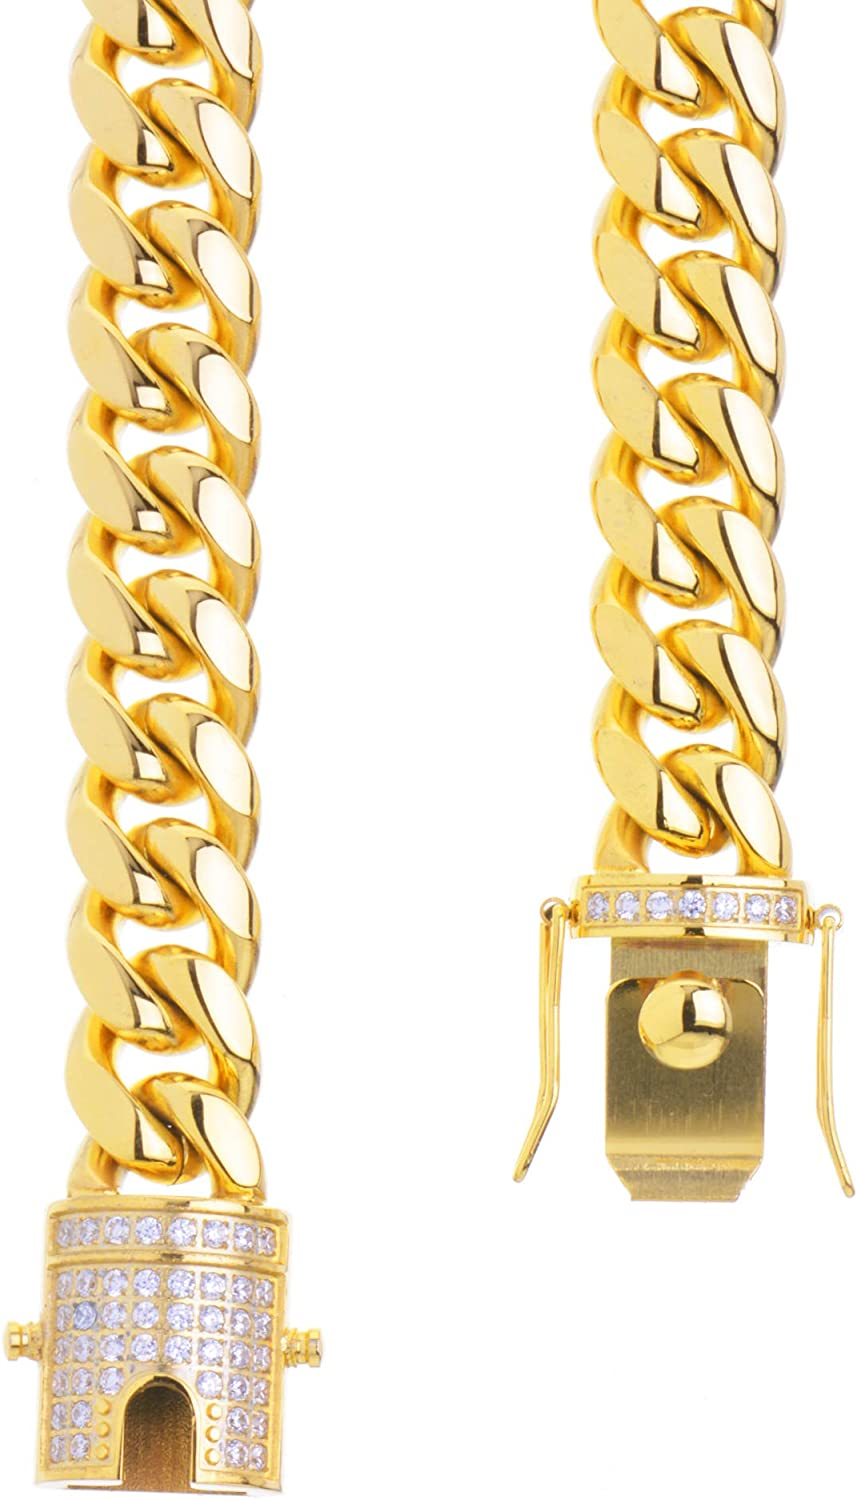 metaltree98 Gold Plated Stainless Steel Miami Cuban Link Chain Rapper Hip Hop SSC 121 G 20